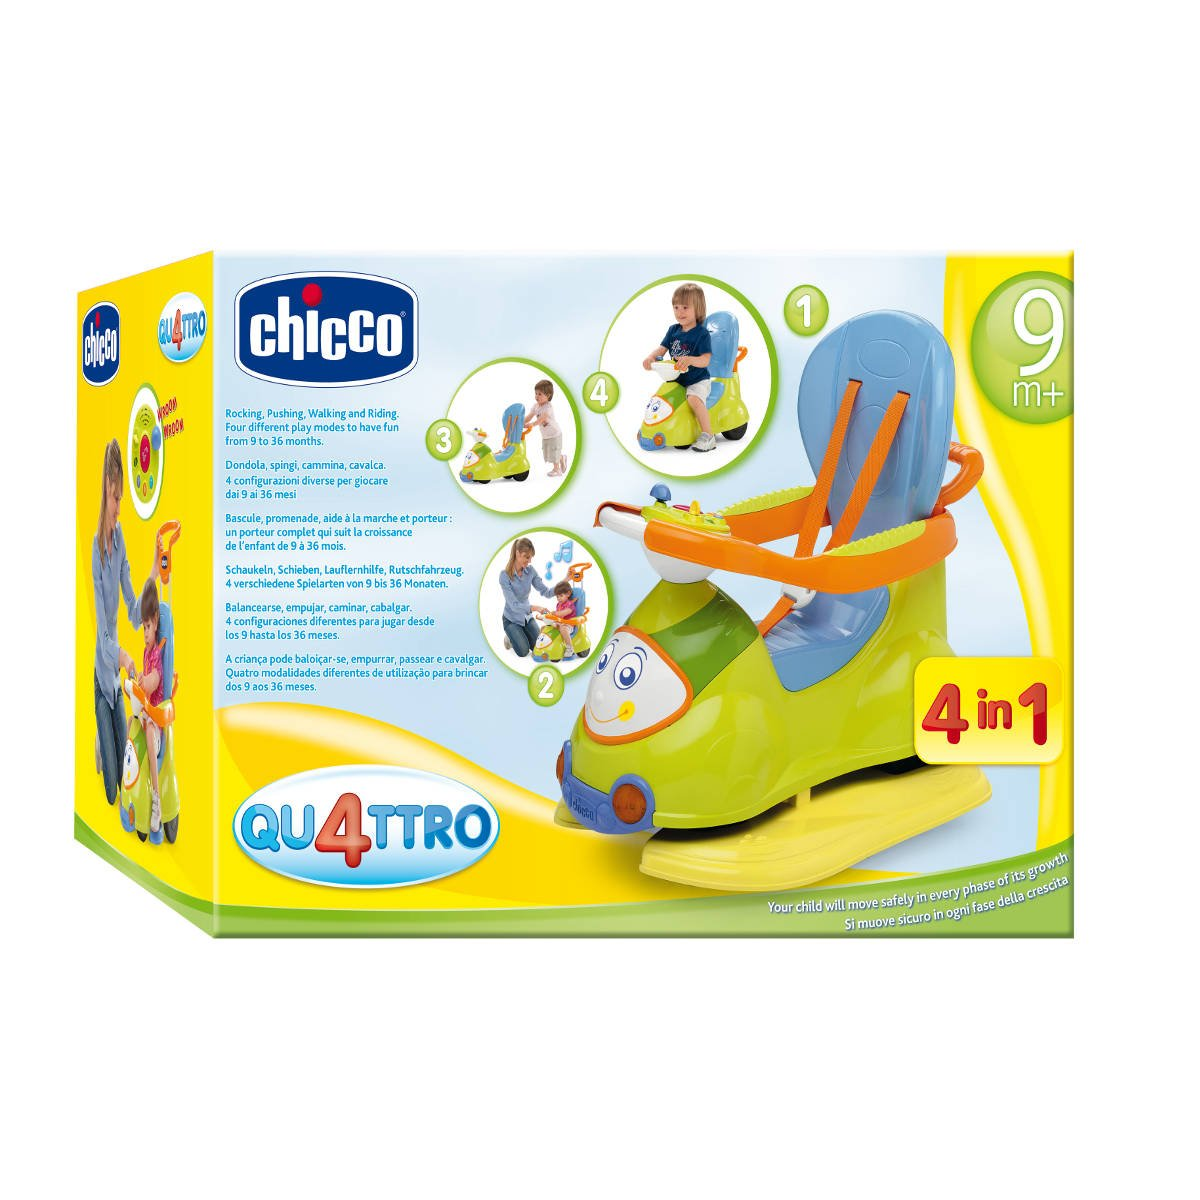 Chicco-CI95/CI9529/C195 Big & Small Irrigador (Remington ...